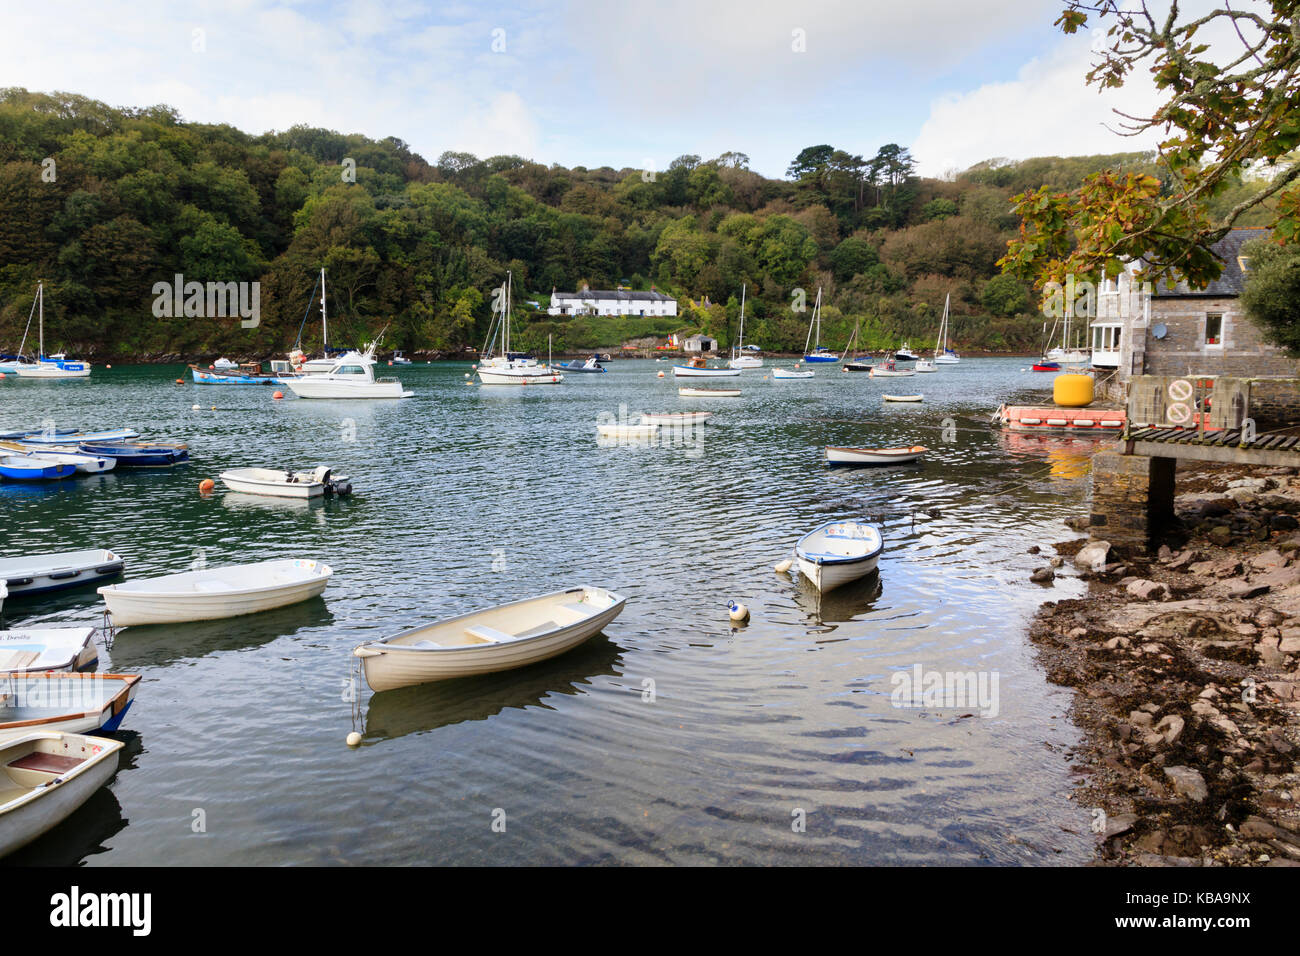 Pleasure craft, dinghies and inshore fishing boats moored at Trebeurden Quay on the River Yealm, Devon, UK - Stock Image